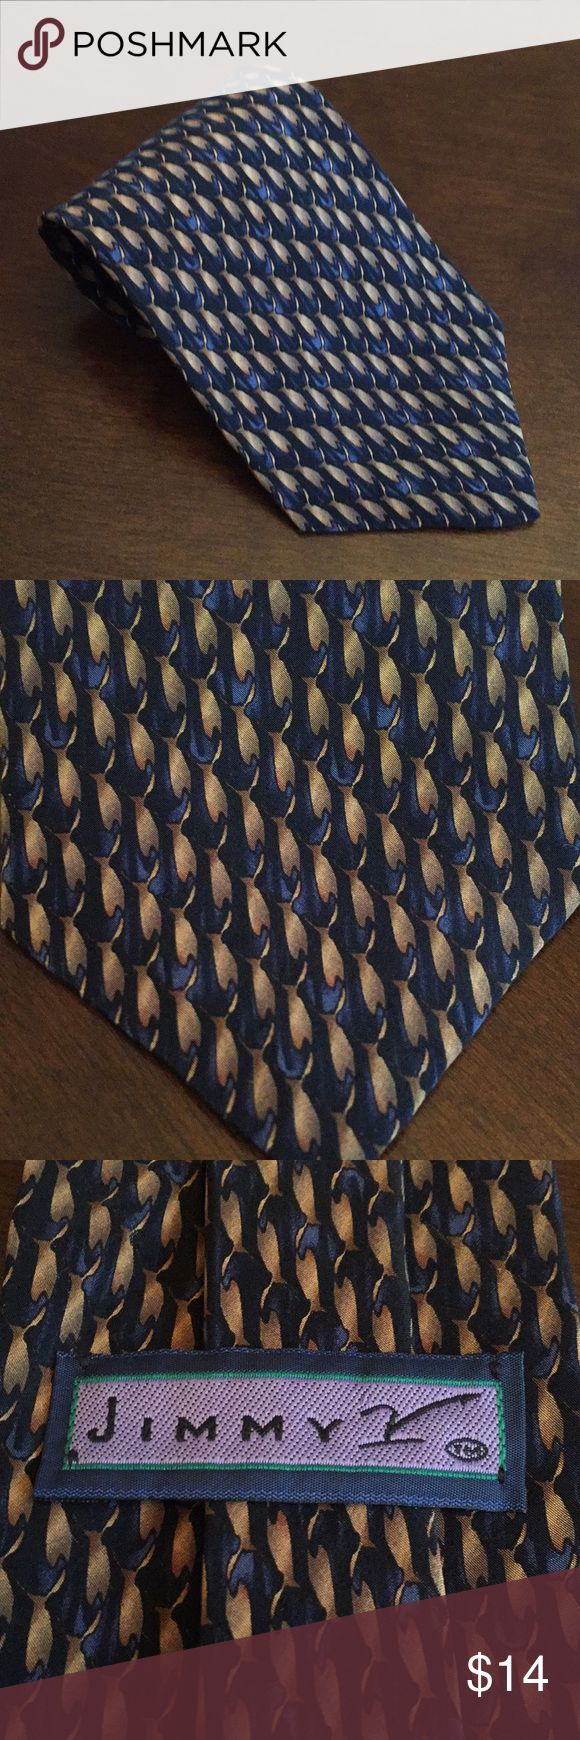 Jimmy V necktie Check out this black and blue necktie from the Jimmy V Collection.  Original Purchase price helped raise funds for cancer research thru The V Foundation. Very good condition.  Black, dark blue and gold pattern. Accessories Ties